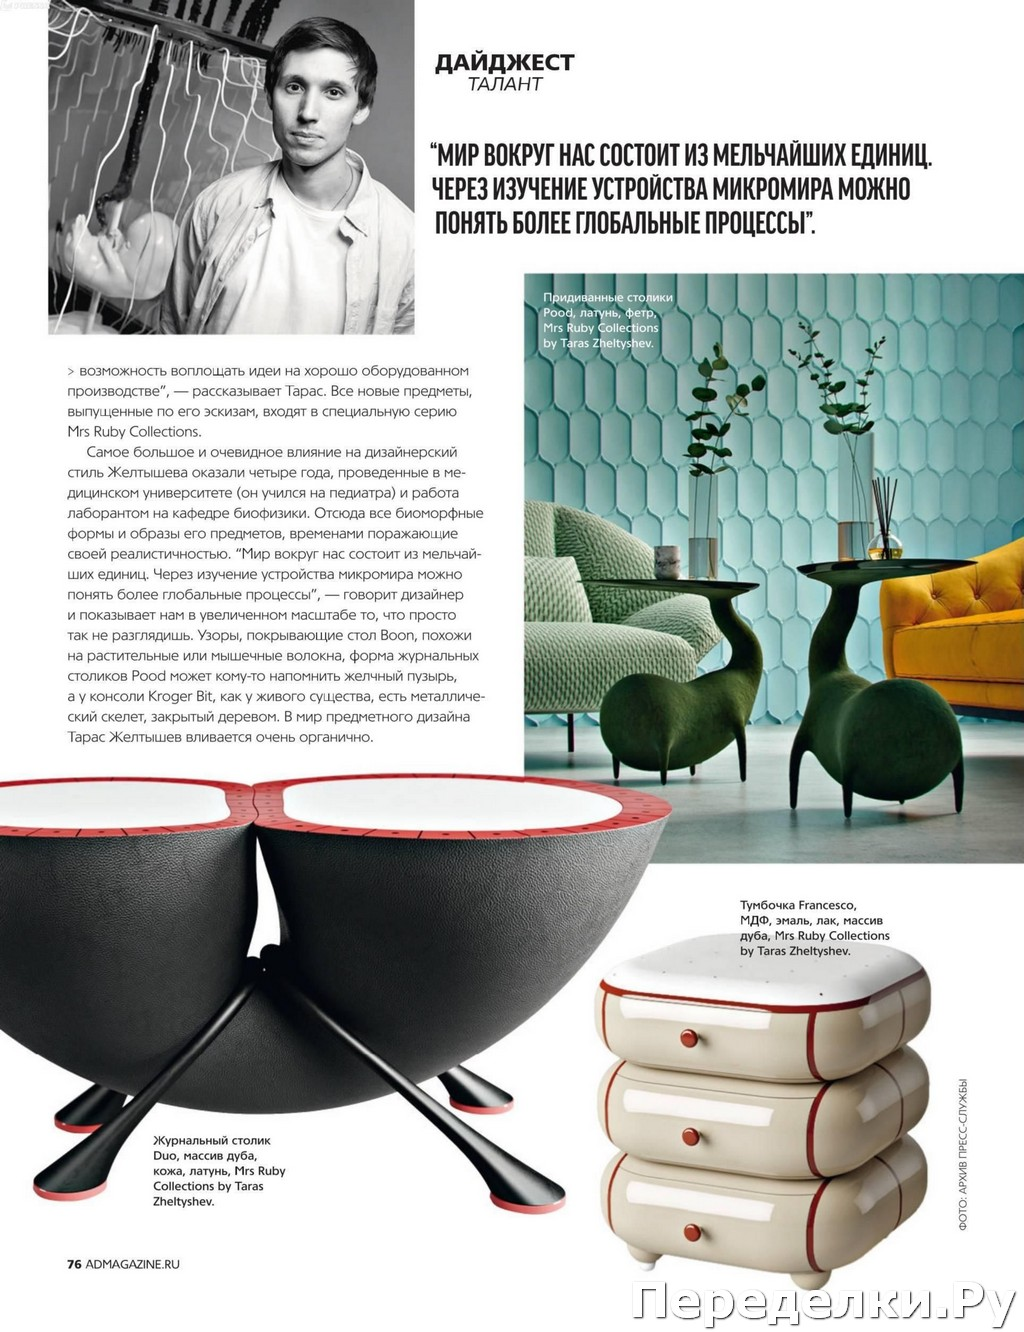 AD Architectural Digest 4 aprel 2020 73